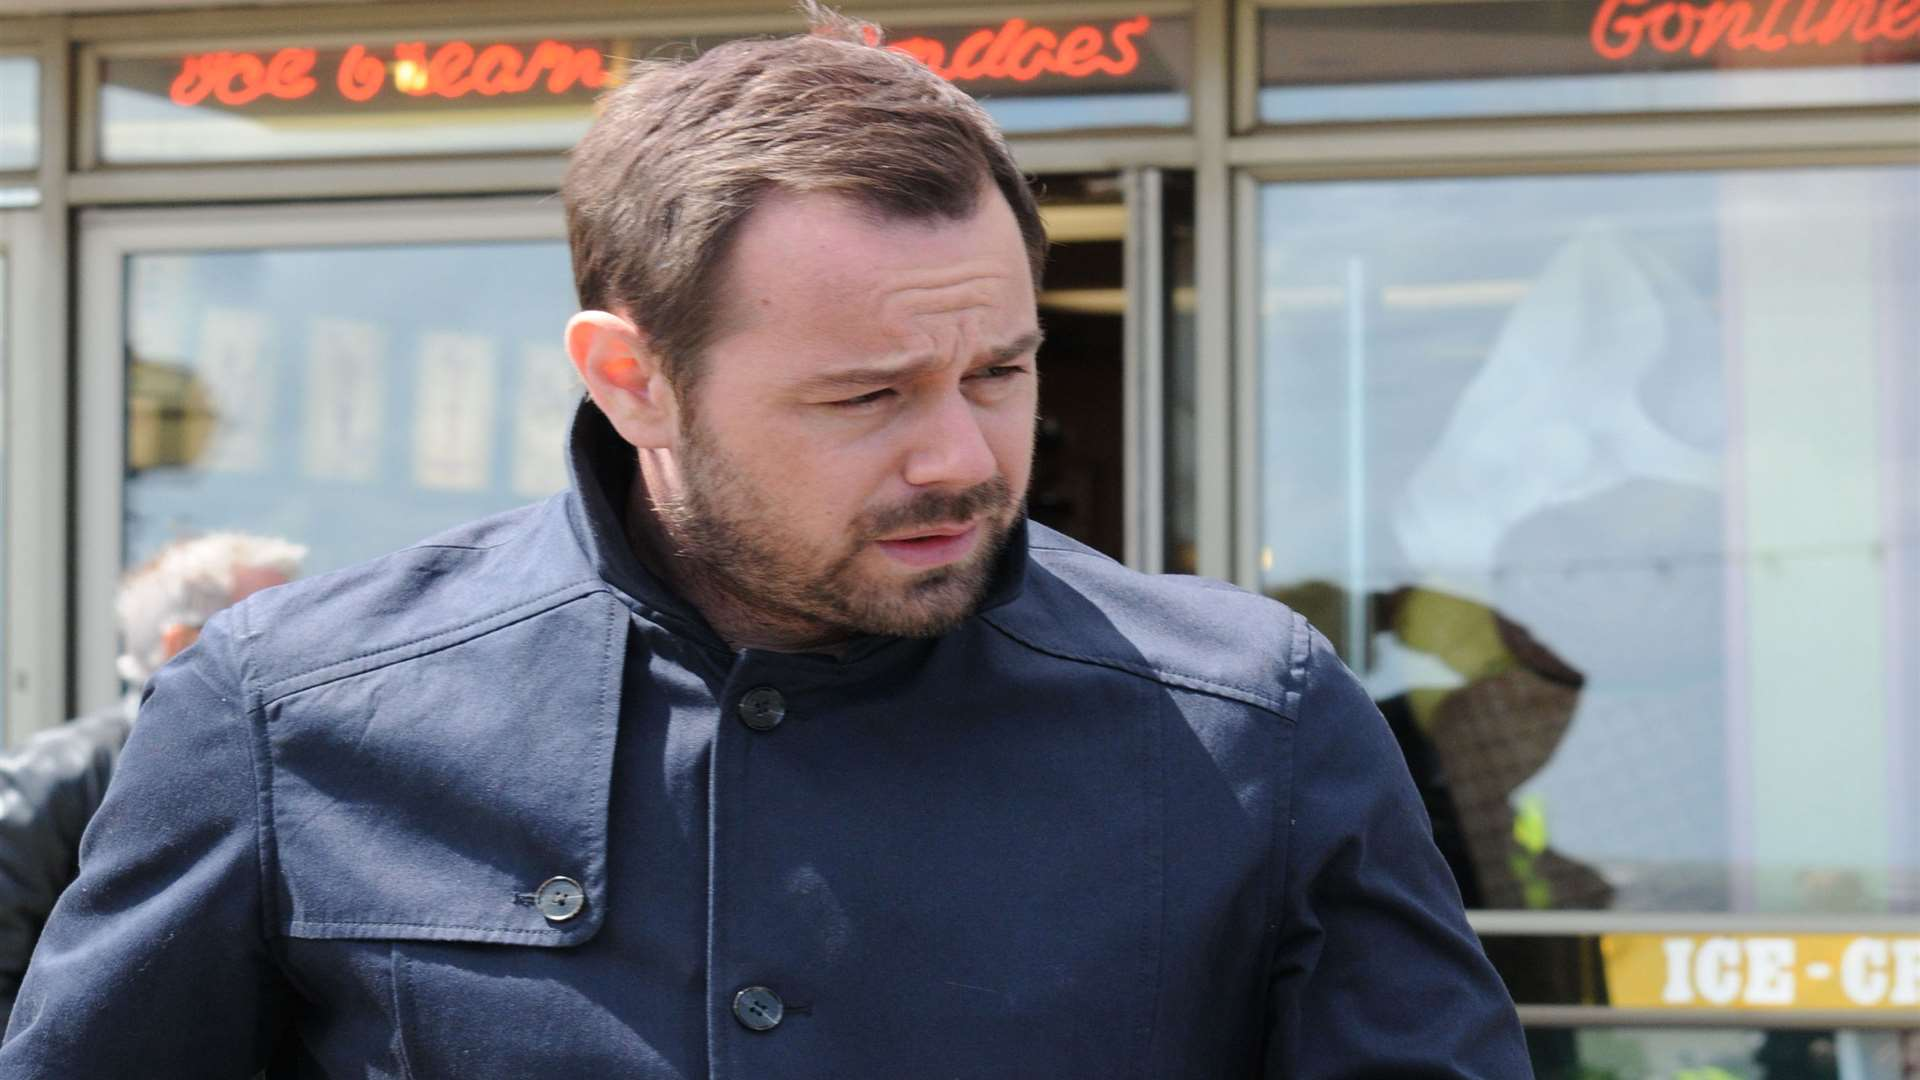 Danny Dyer outside Morelli's ice cream parlour